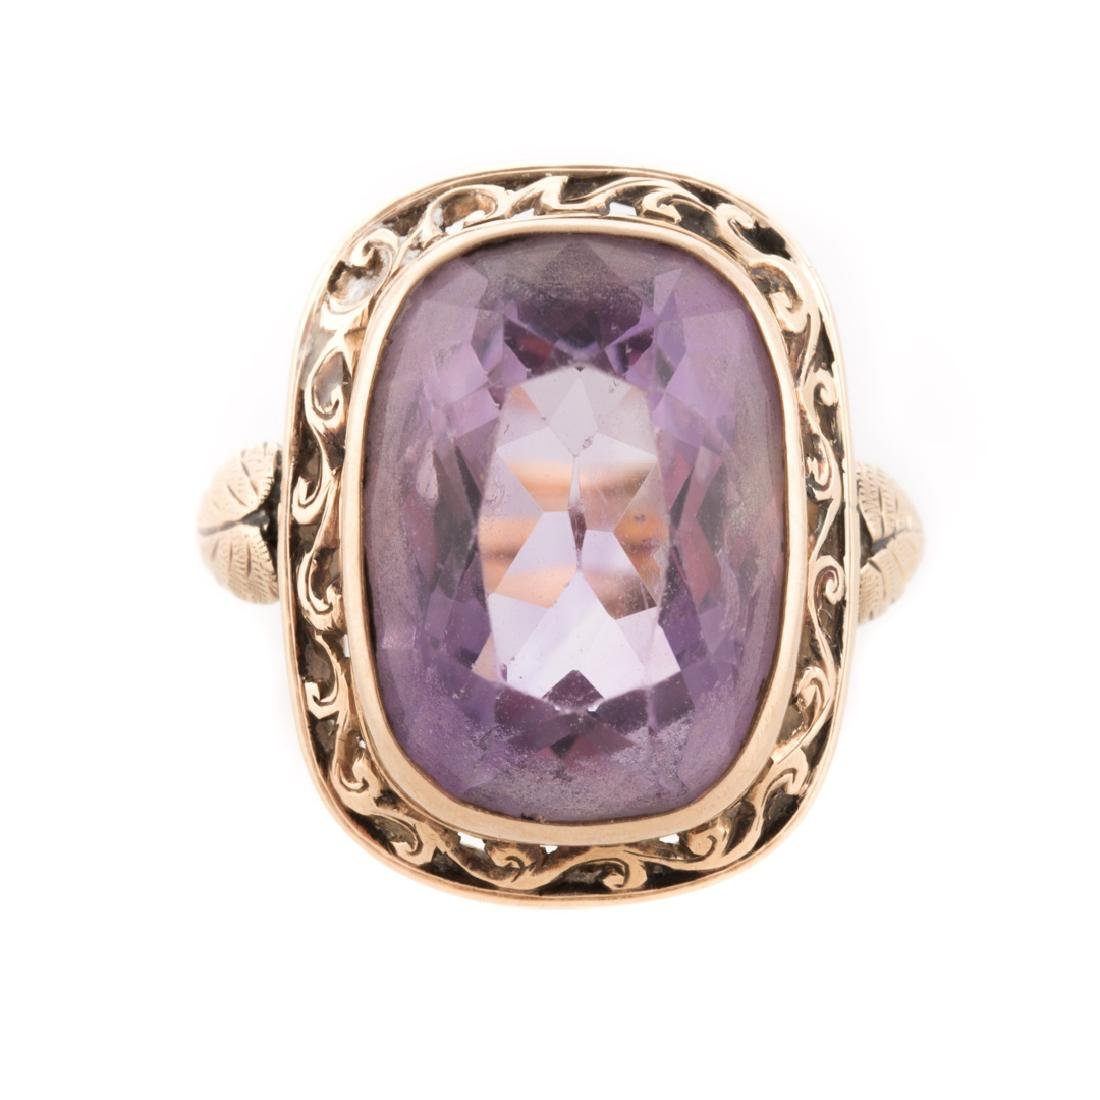 A Victorian Amethyst Ring in Gold